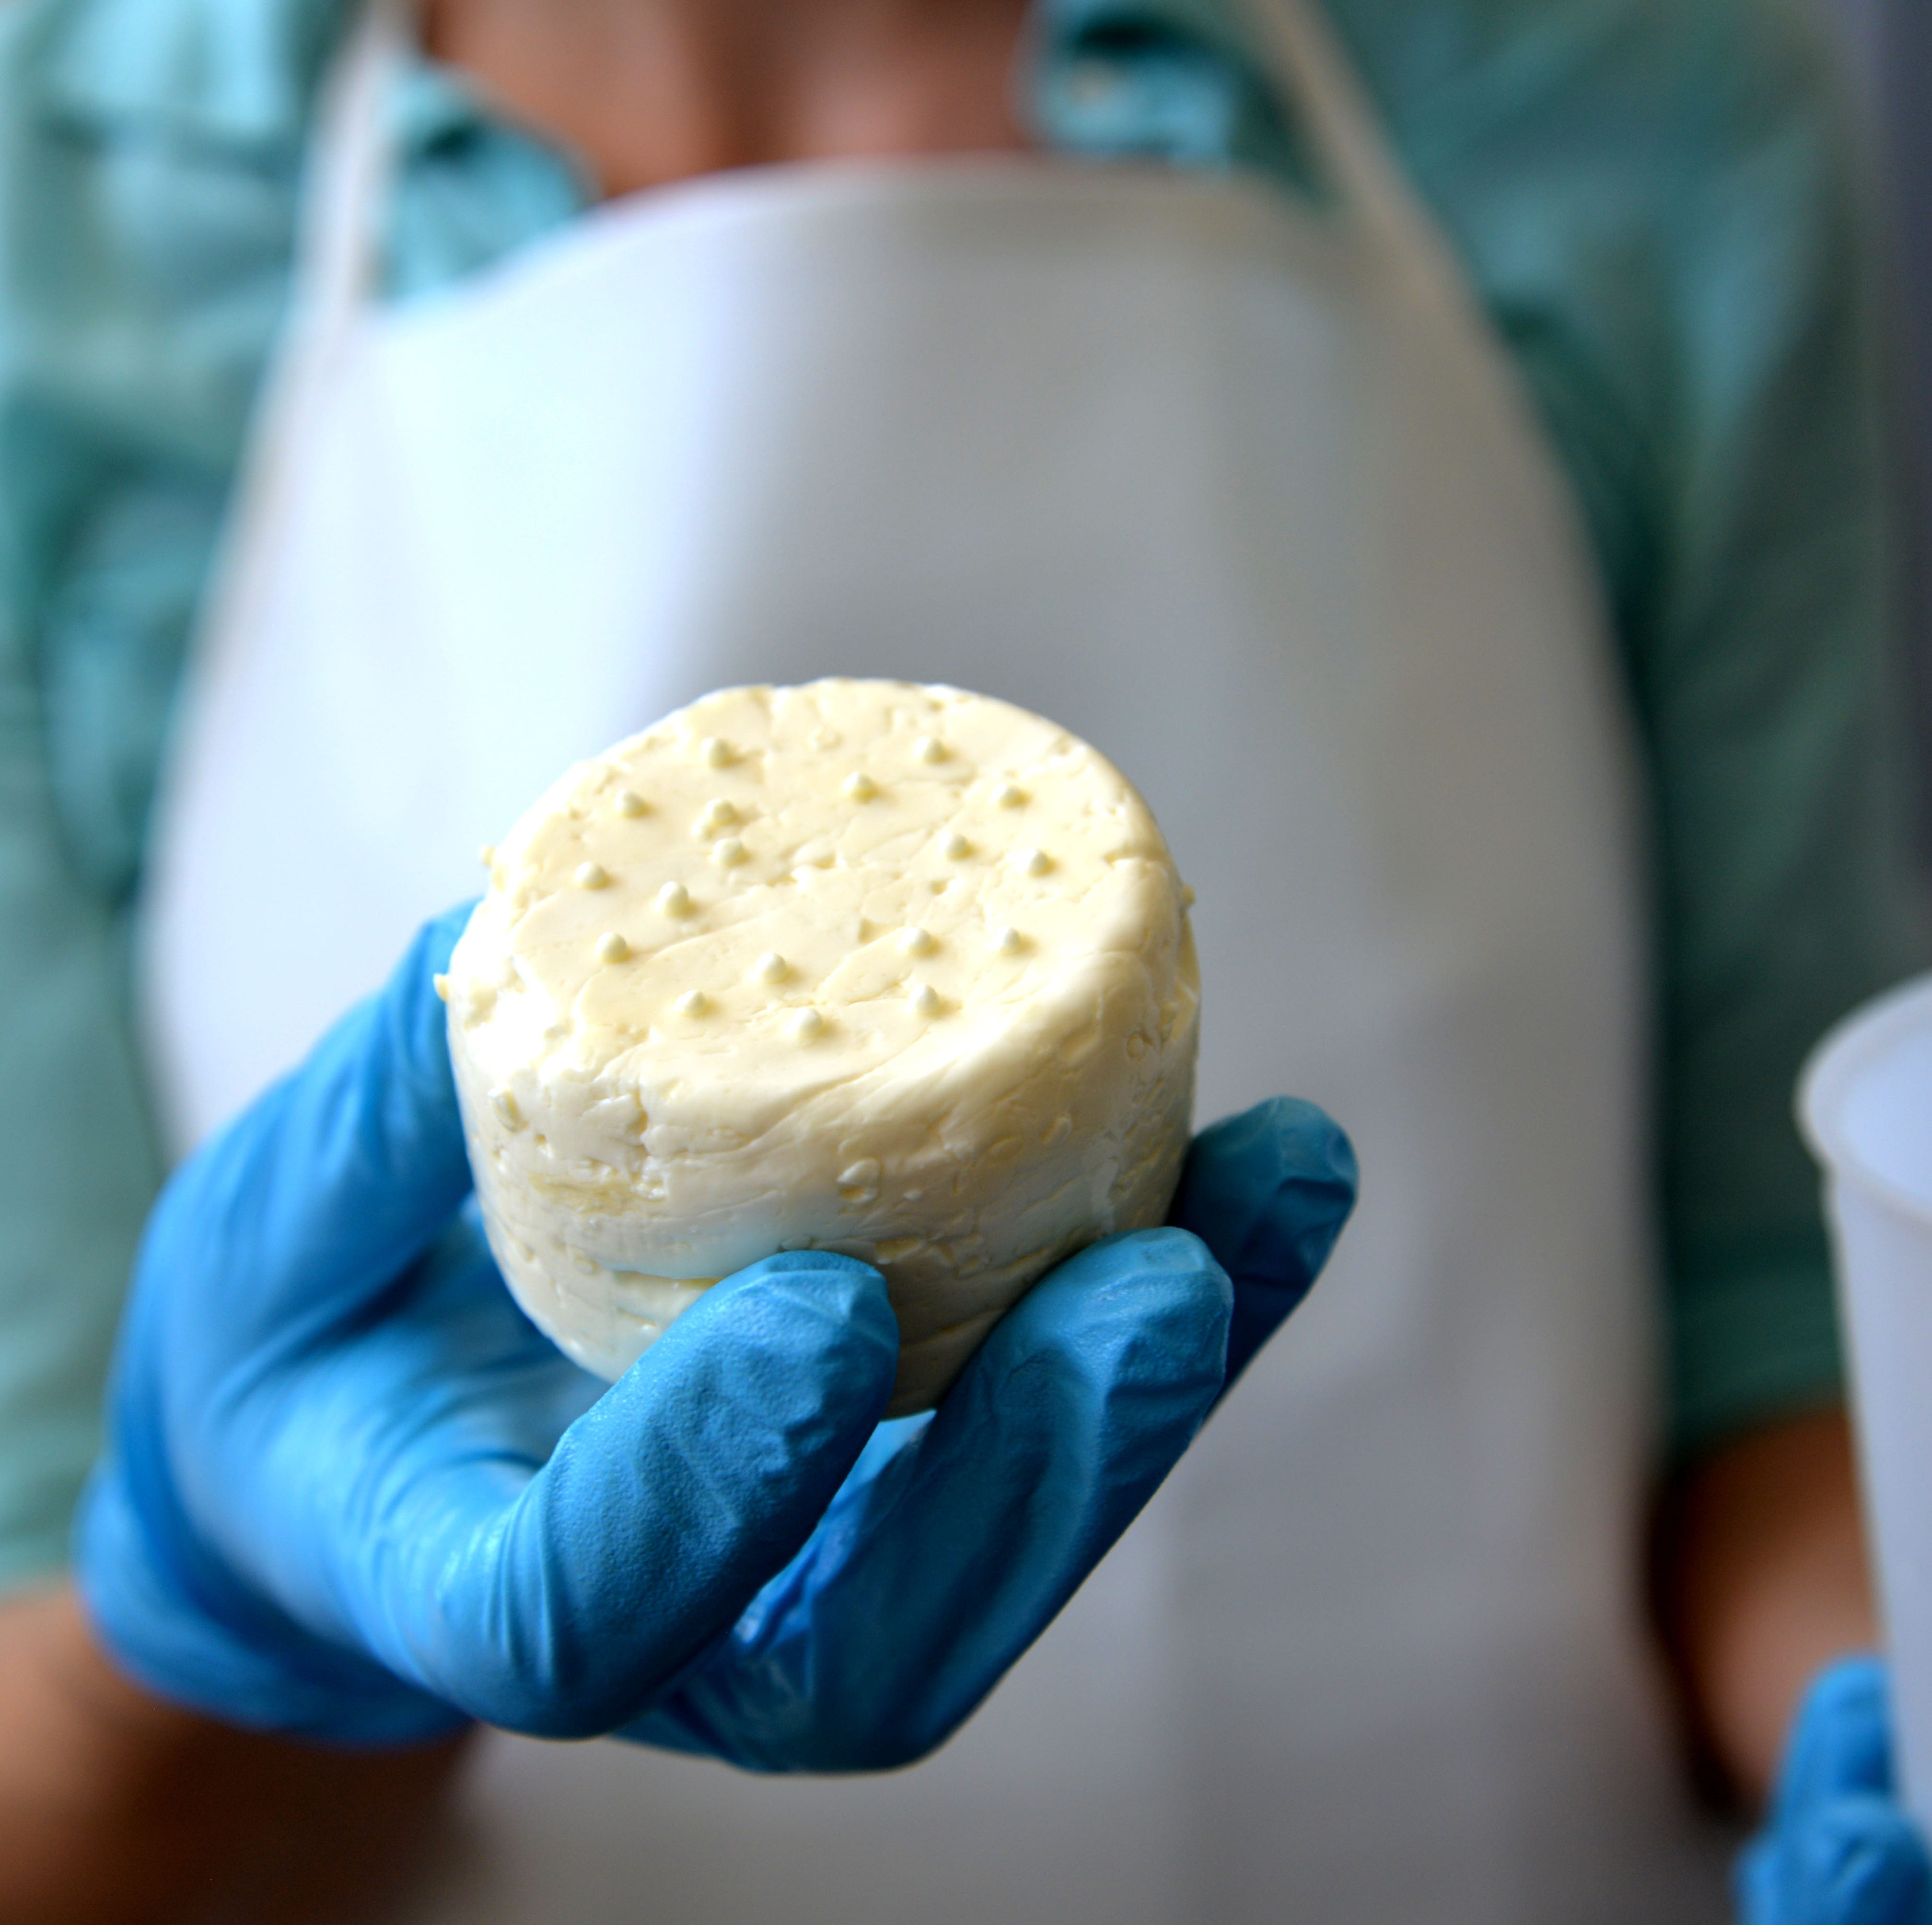 New cheese creamery opens in Staunton: offers small batch cheese, cheese club